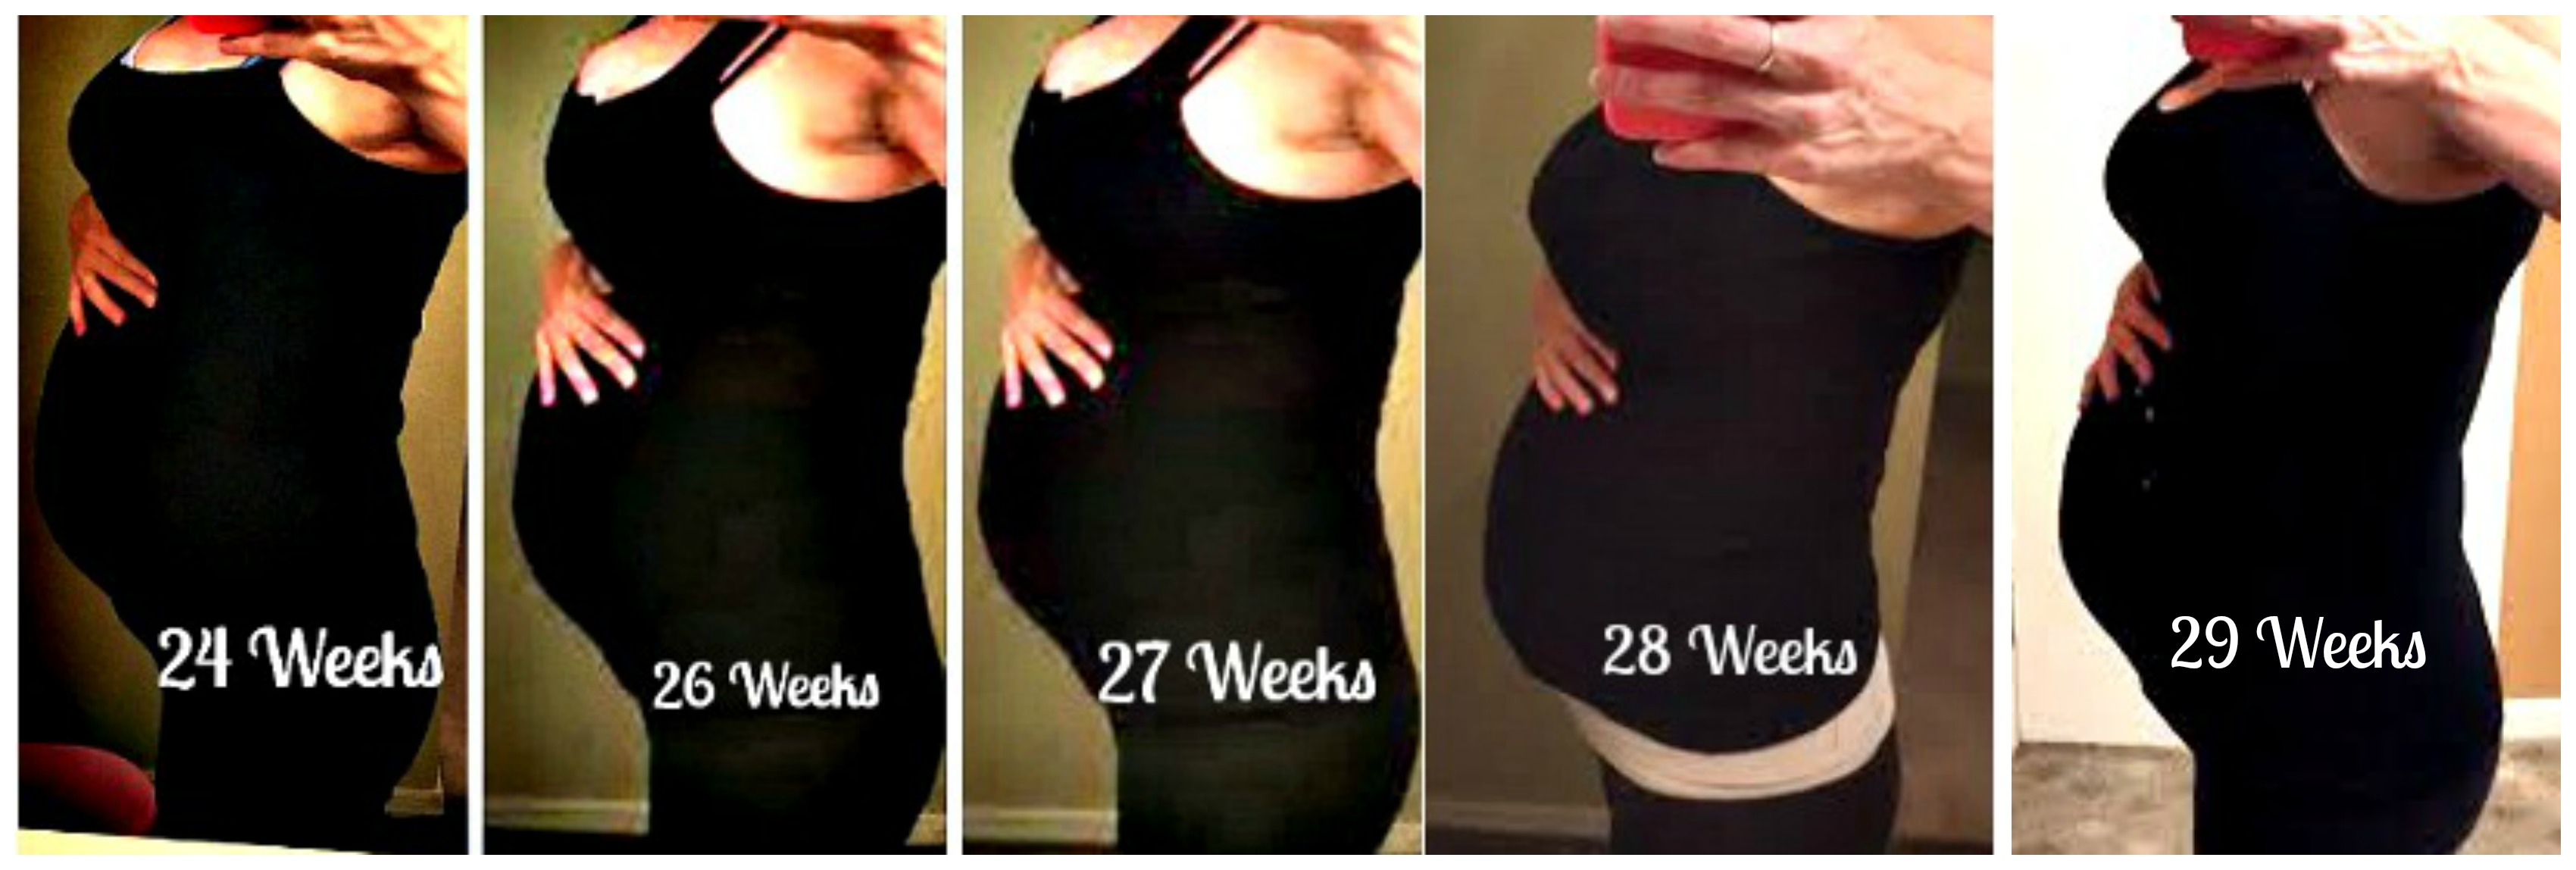 ... weeks twin belly growth ...